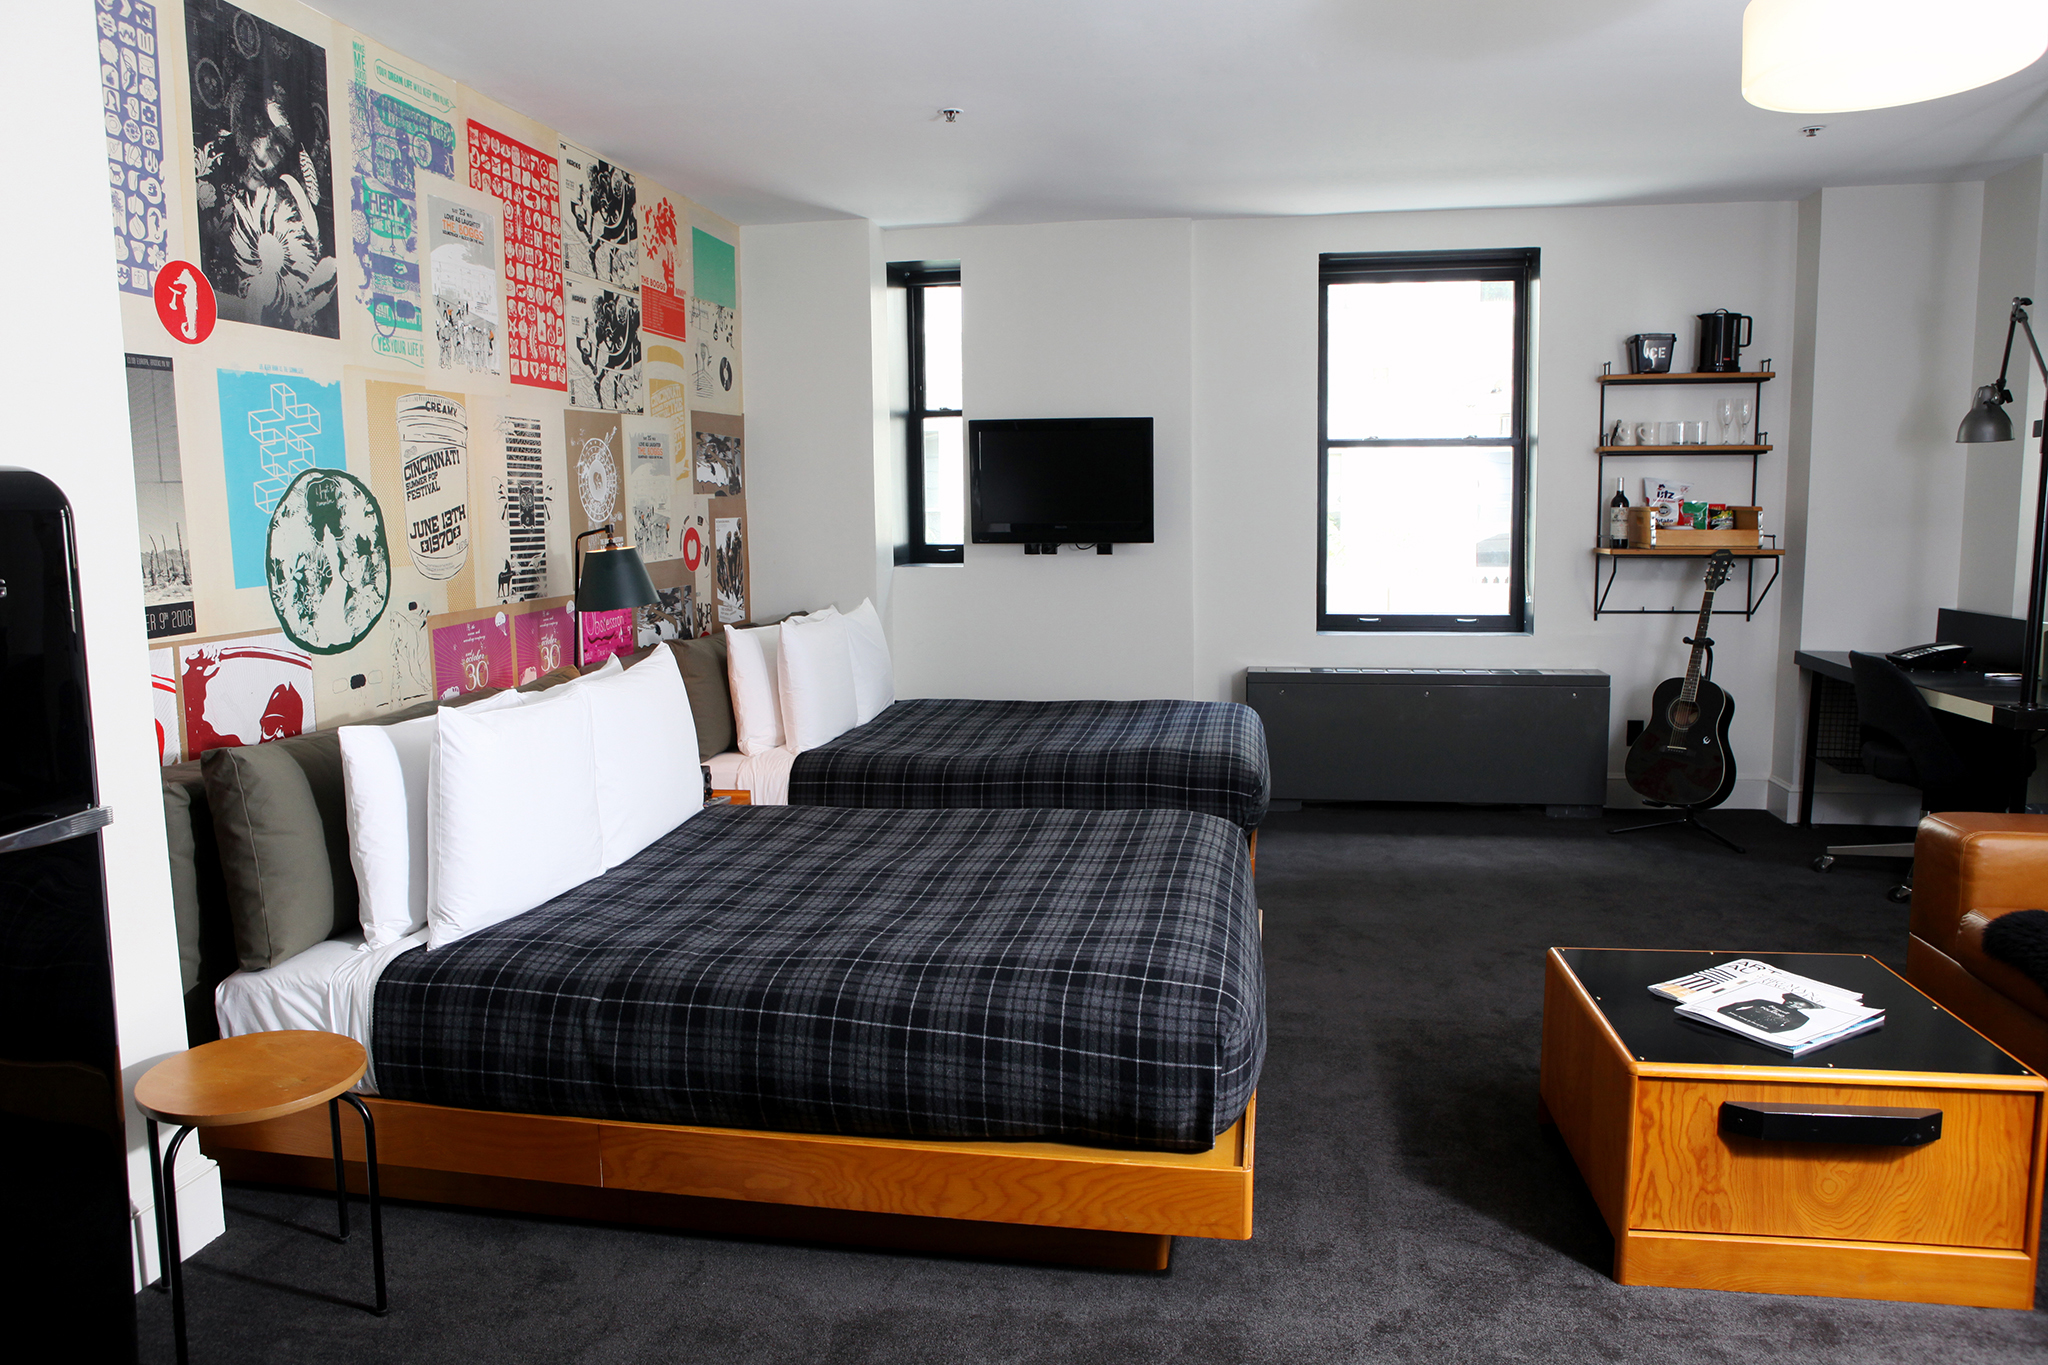 The best budget hotels in NYC